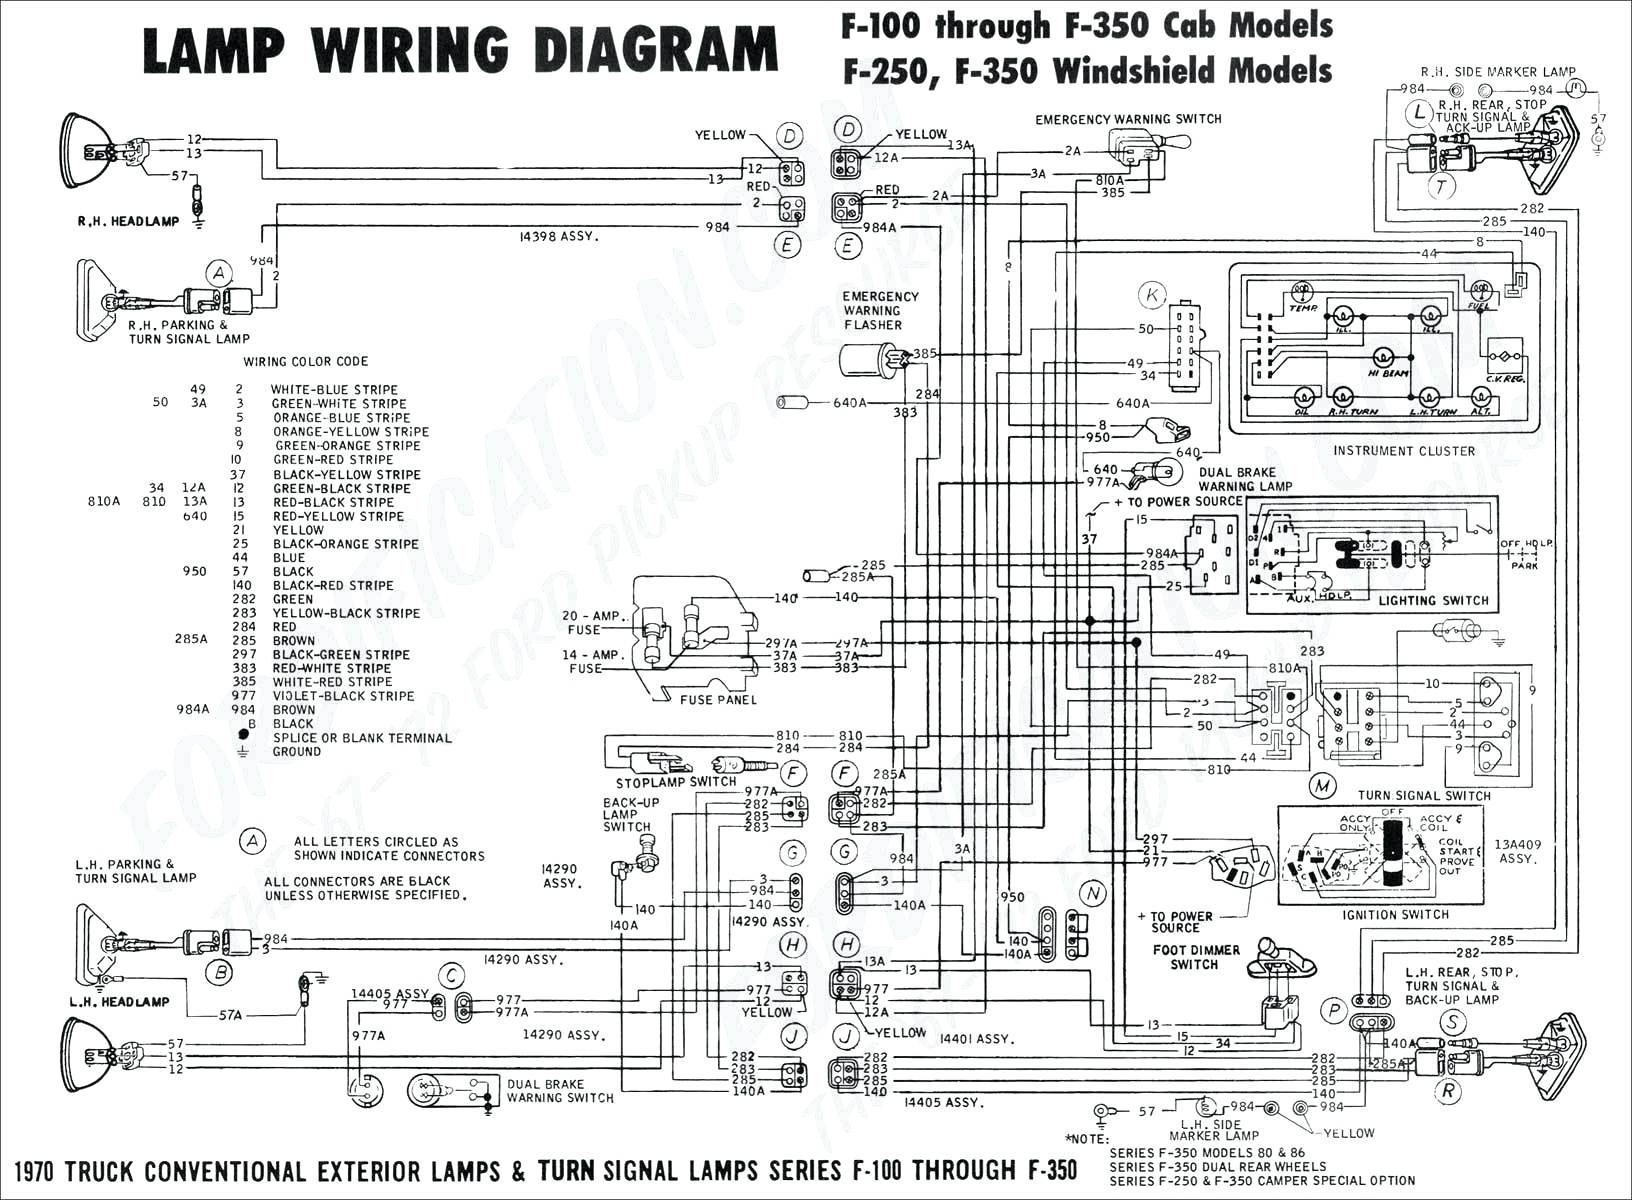 2007 chevy silverado hitch wiring diagram wiring diagram suzuki eiger 400 2007 wiring diagram  wiring diagram suzuki eiger 400 2007